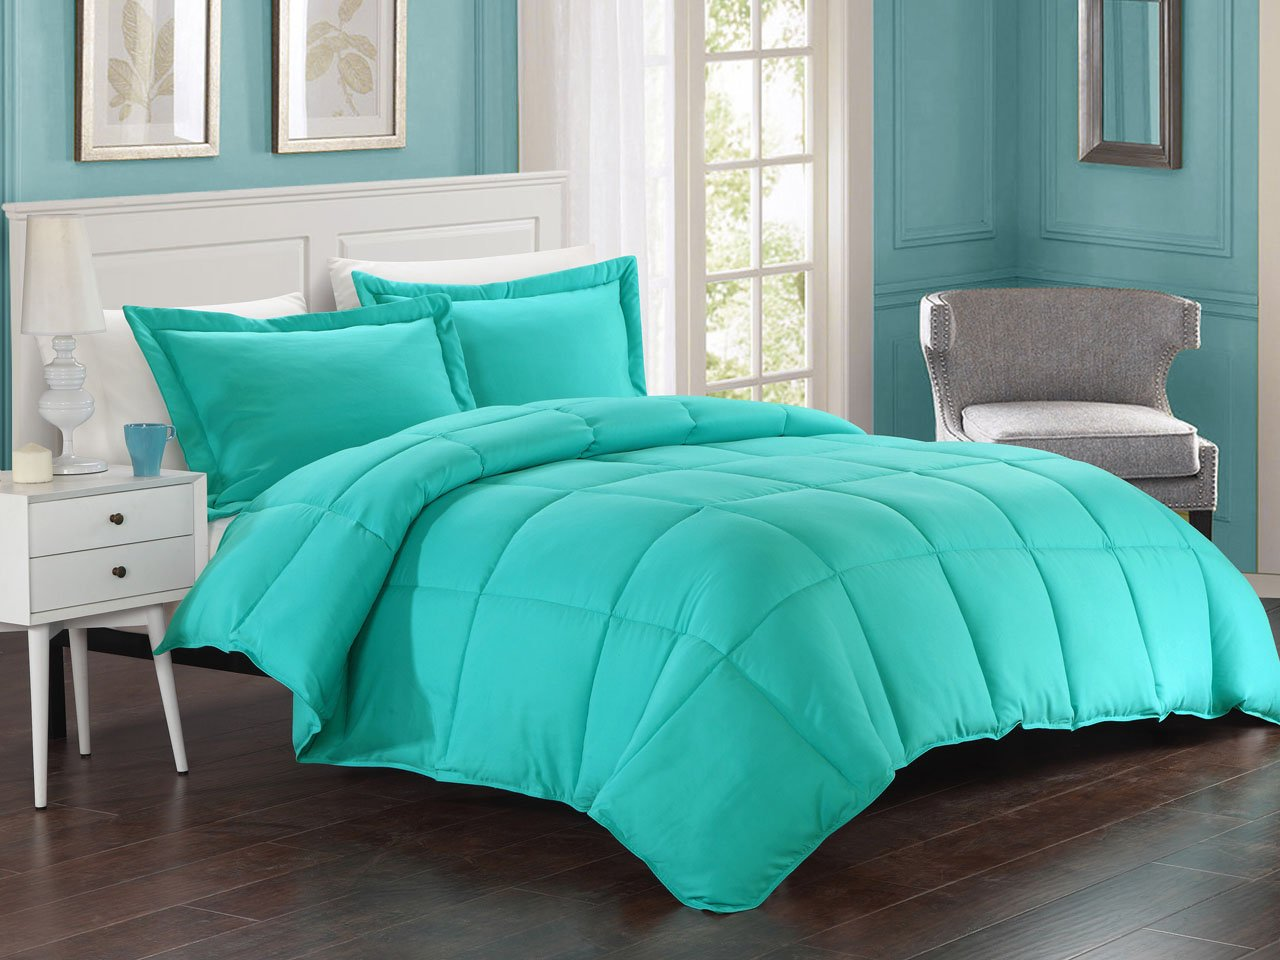 Bedding sets turquoise - Kinglinen Turquoise Down Alternative Comforter Set King